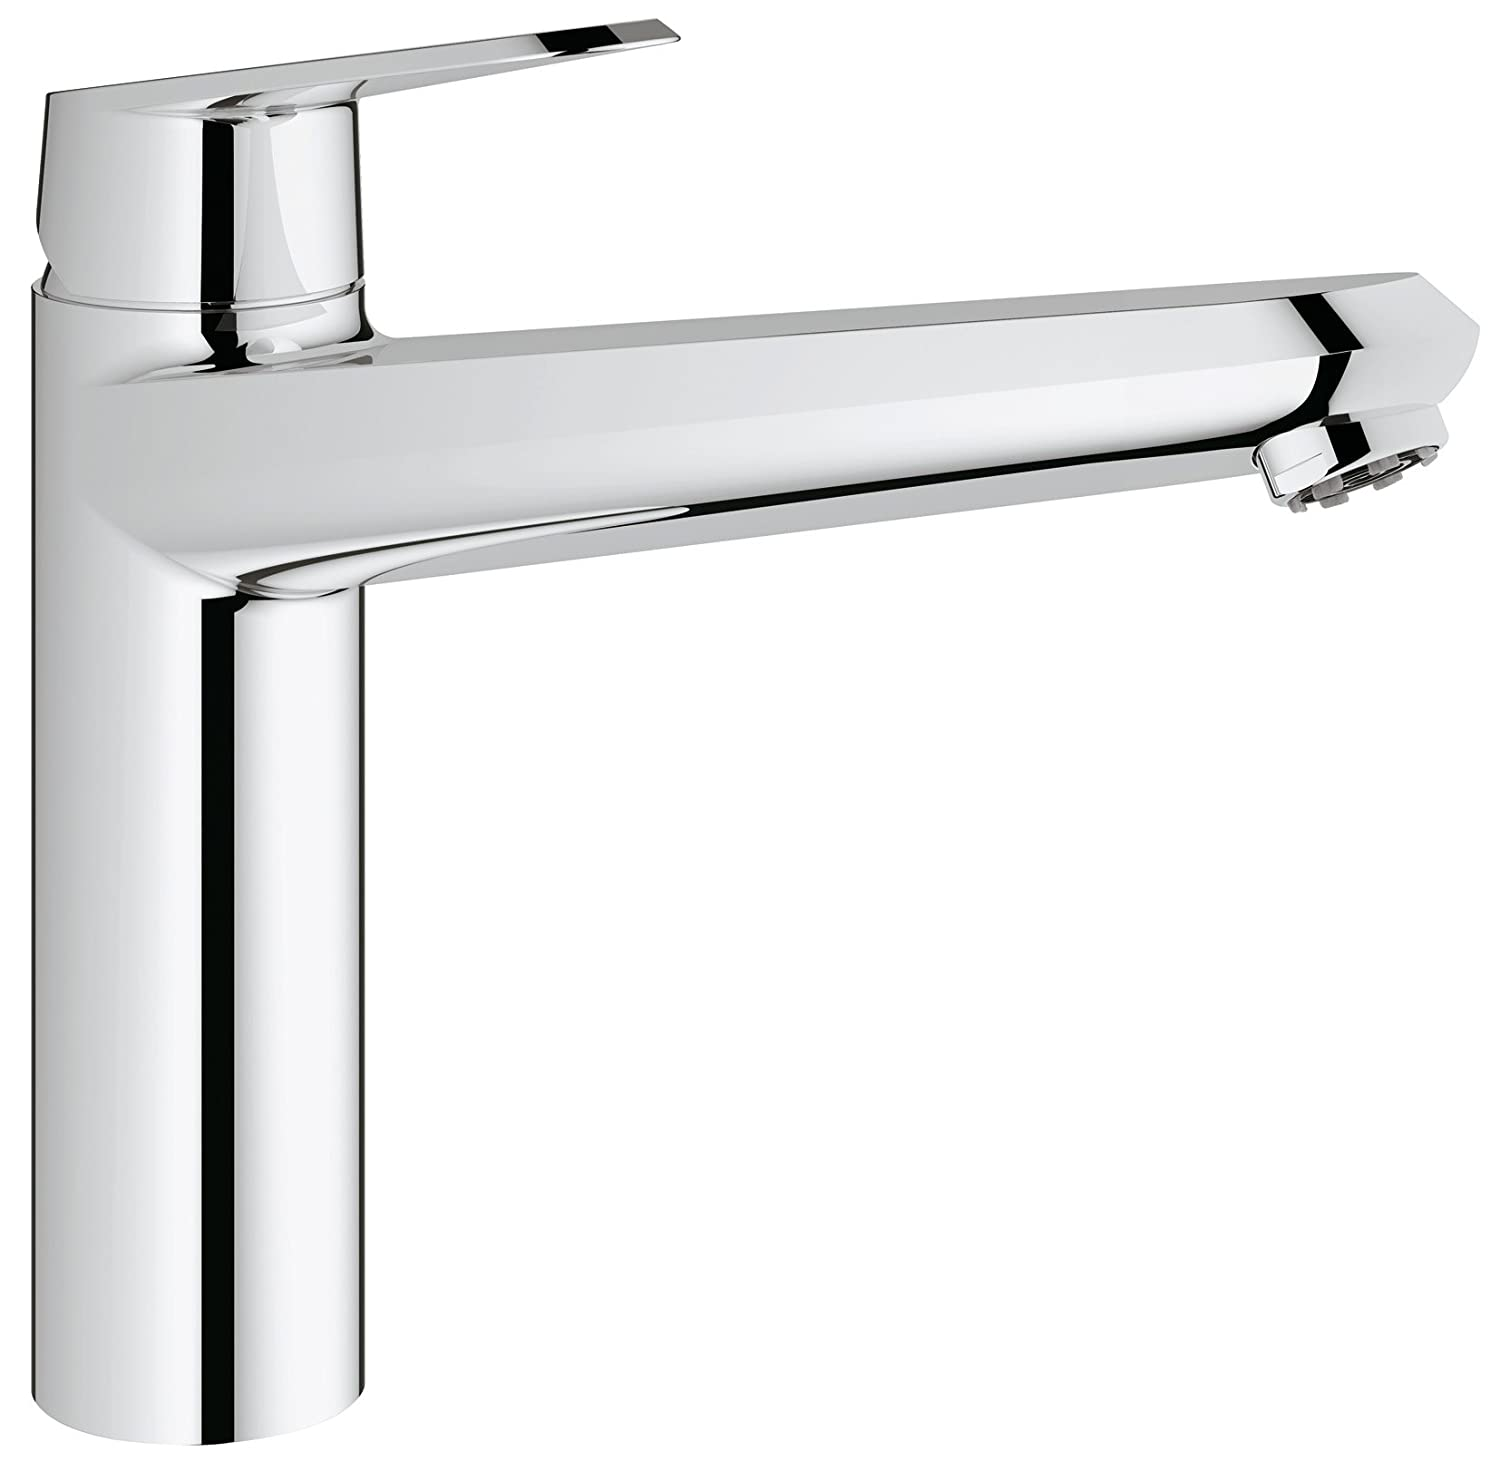 Grohe Armatur Grohe Touch Kkken With Grohe Armatur Fabulous